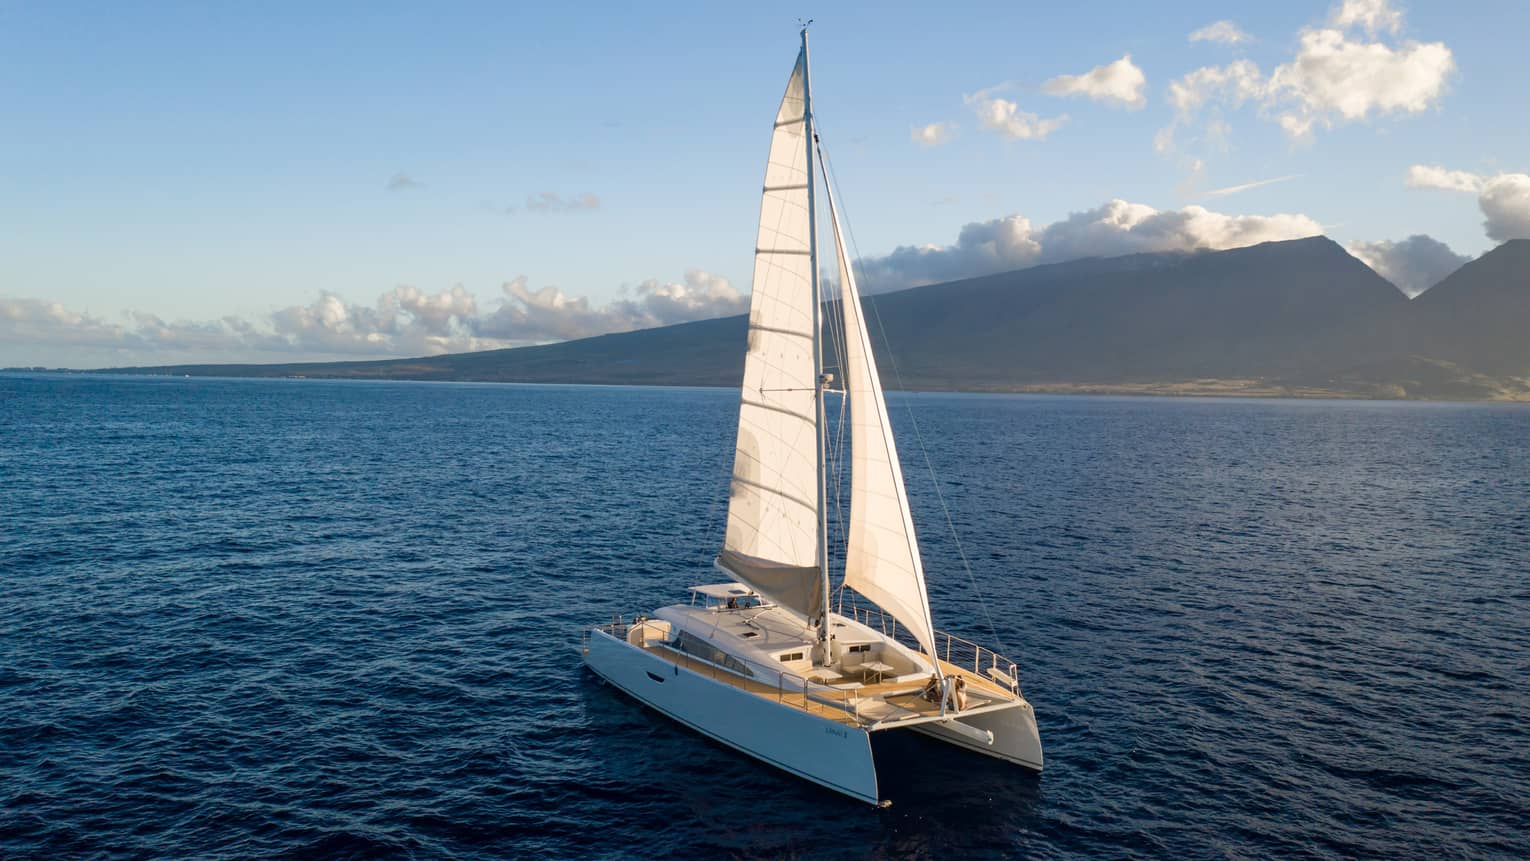 Catamaran sailing on the open water against mountain backdrop